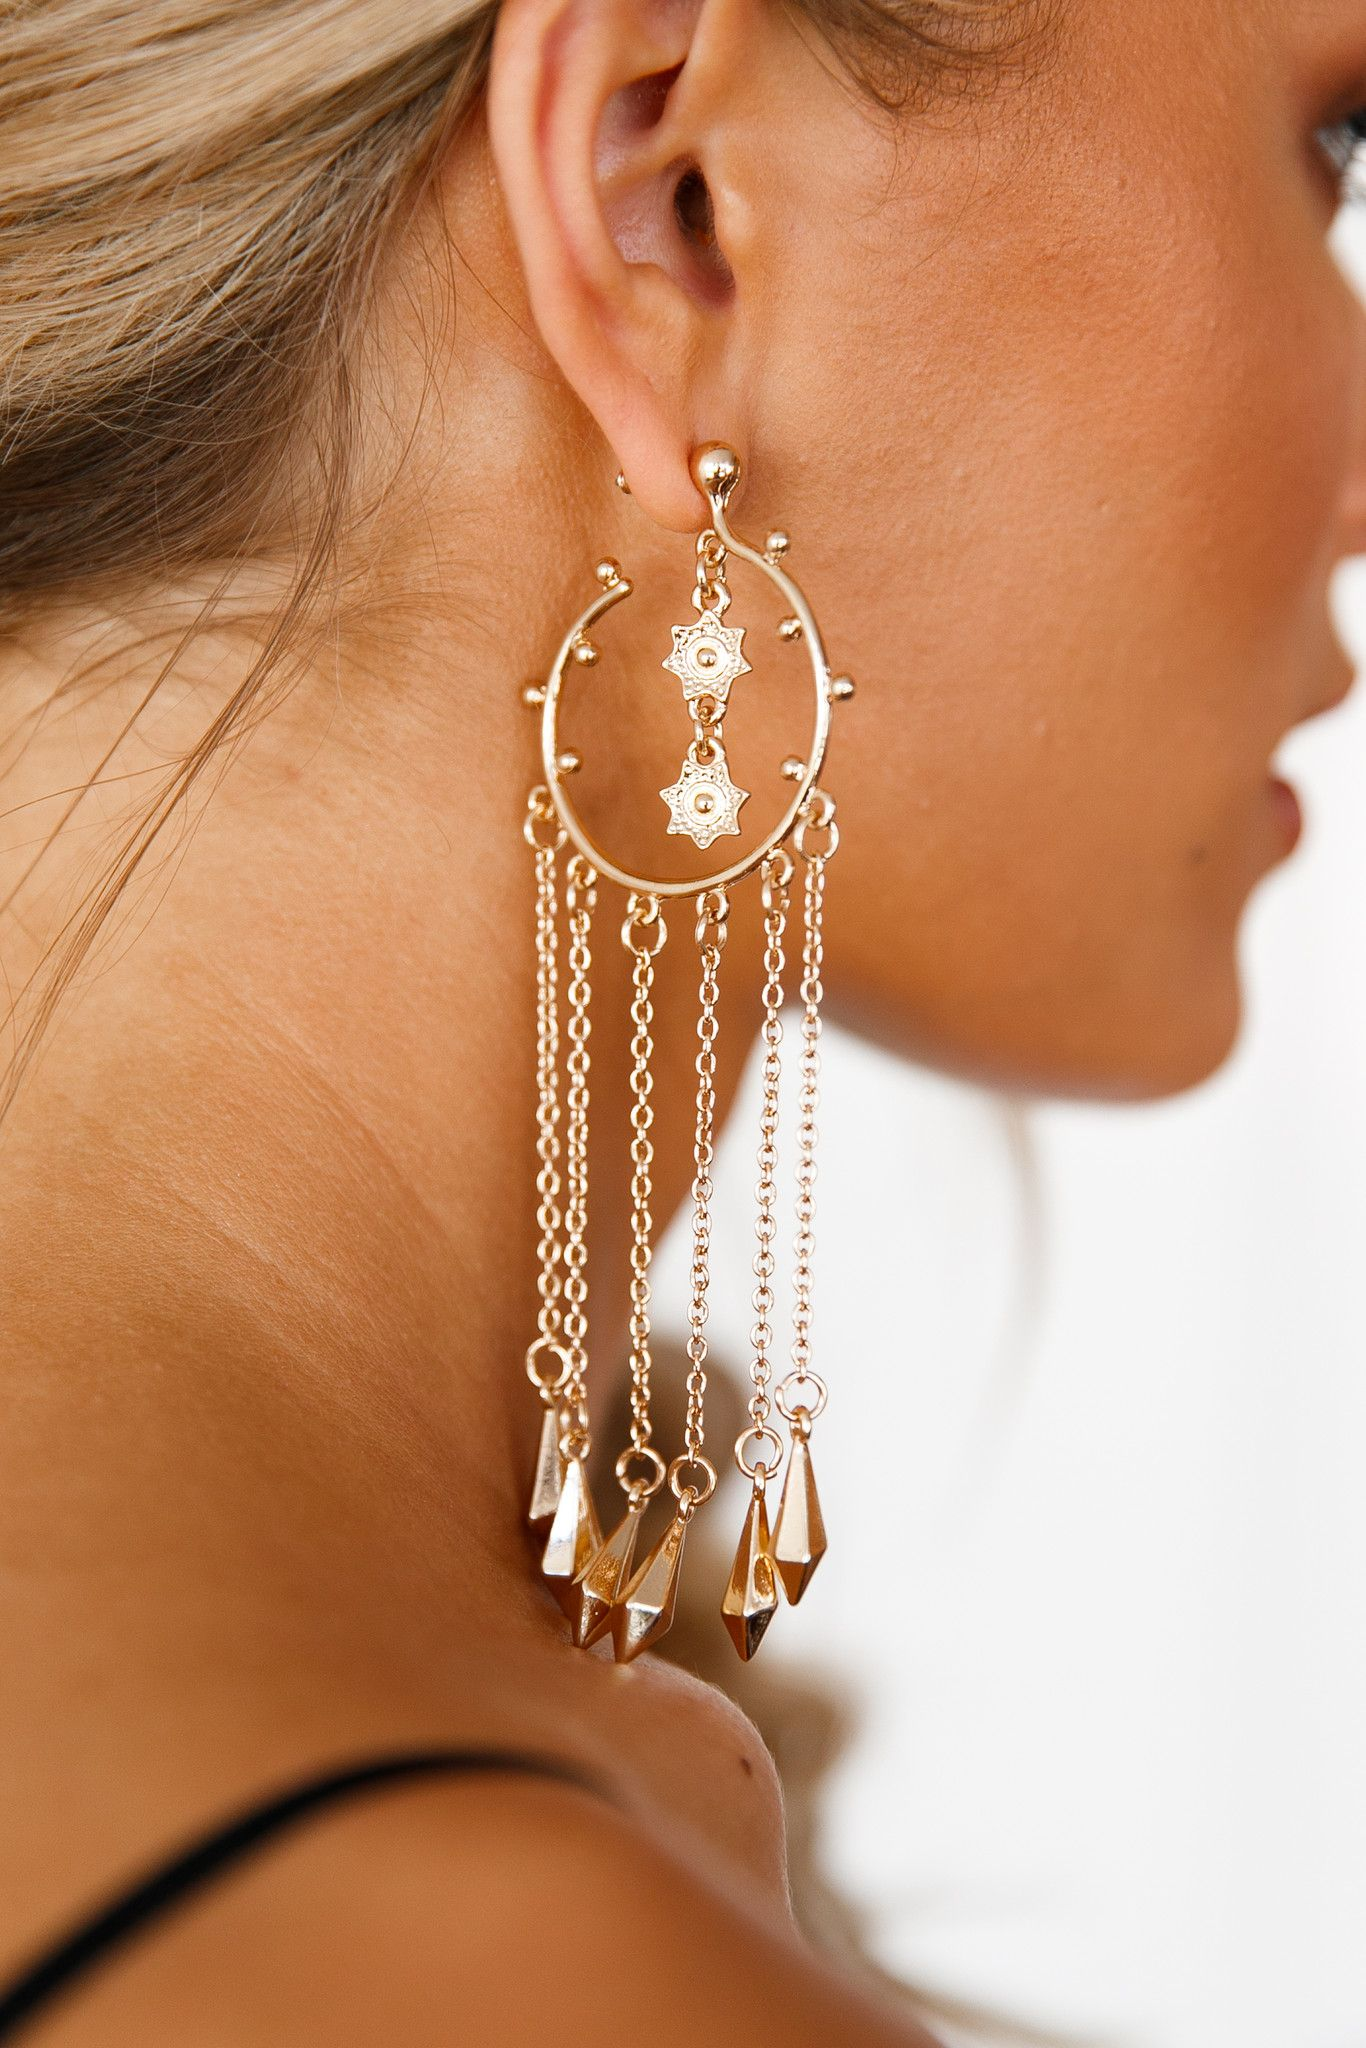 Xenia Boutique - Tangled Love Earrings (Gold)